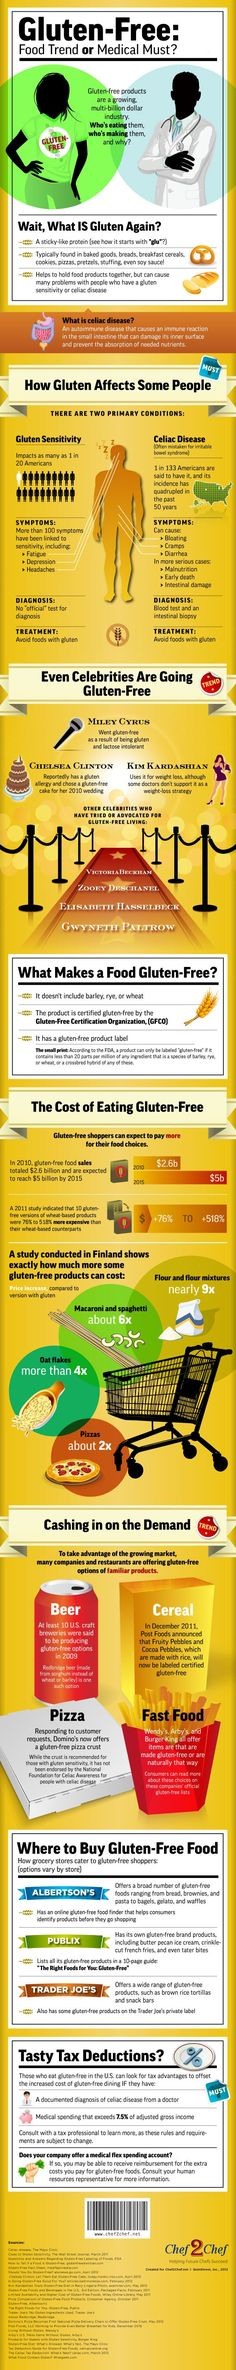 Gluten Free Diet: It's all about Gluten. The controversial protein found in baked products that has fostered a gluten-free food market both for sufferers and diet freaks. Whatever side of the coin, you're gonna pay more for this specialty.